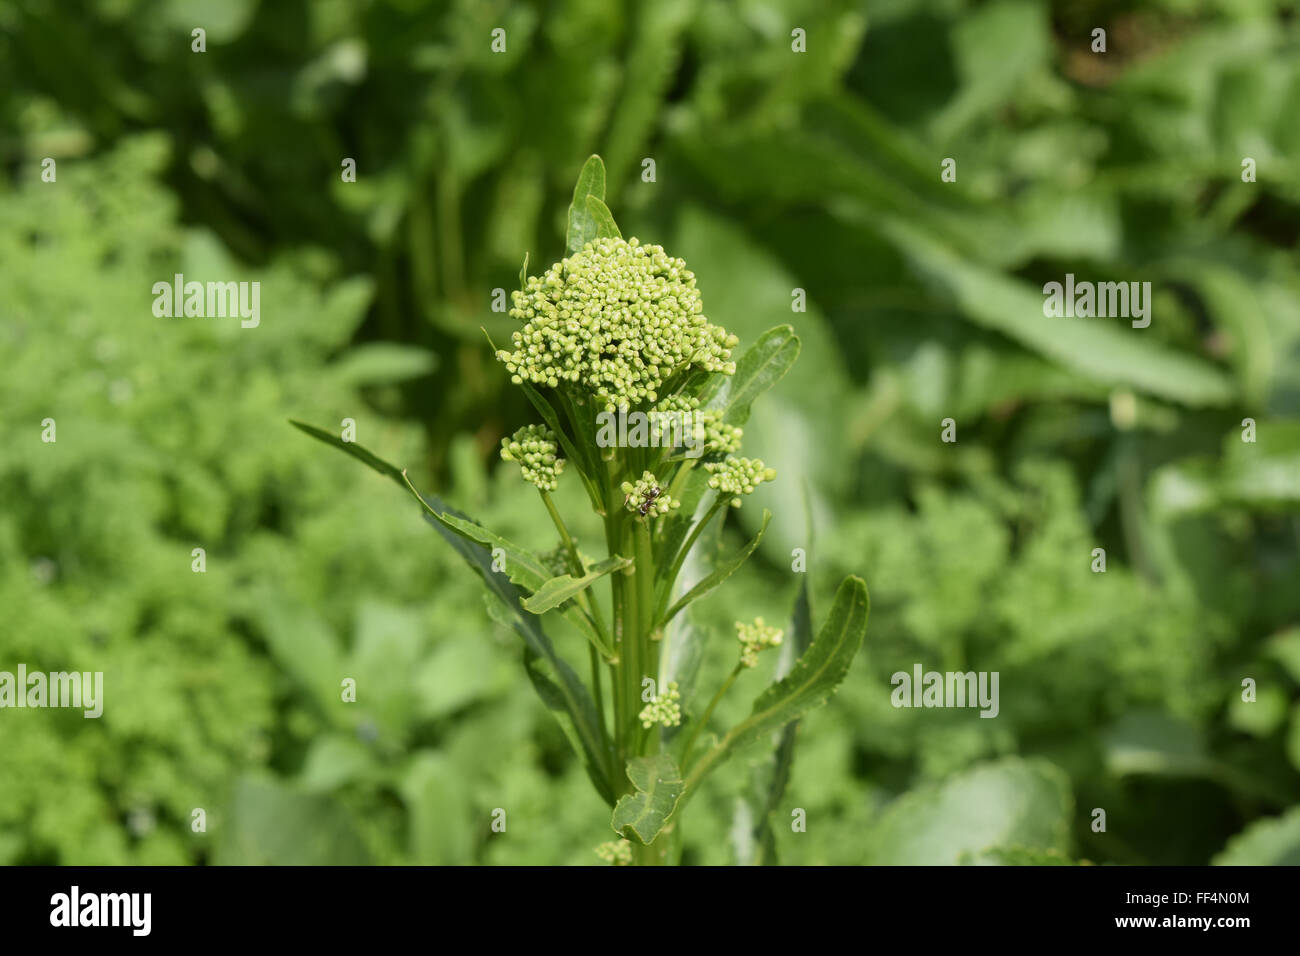 Ripened flower horseradish. Spicy plants in the garden. - Stock Image